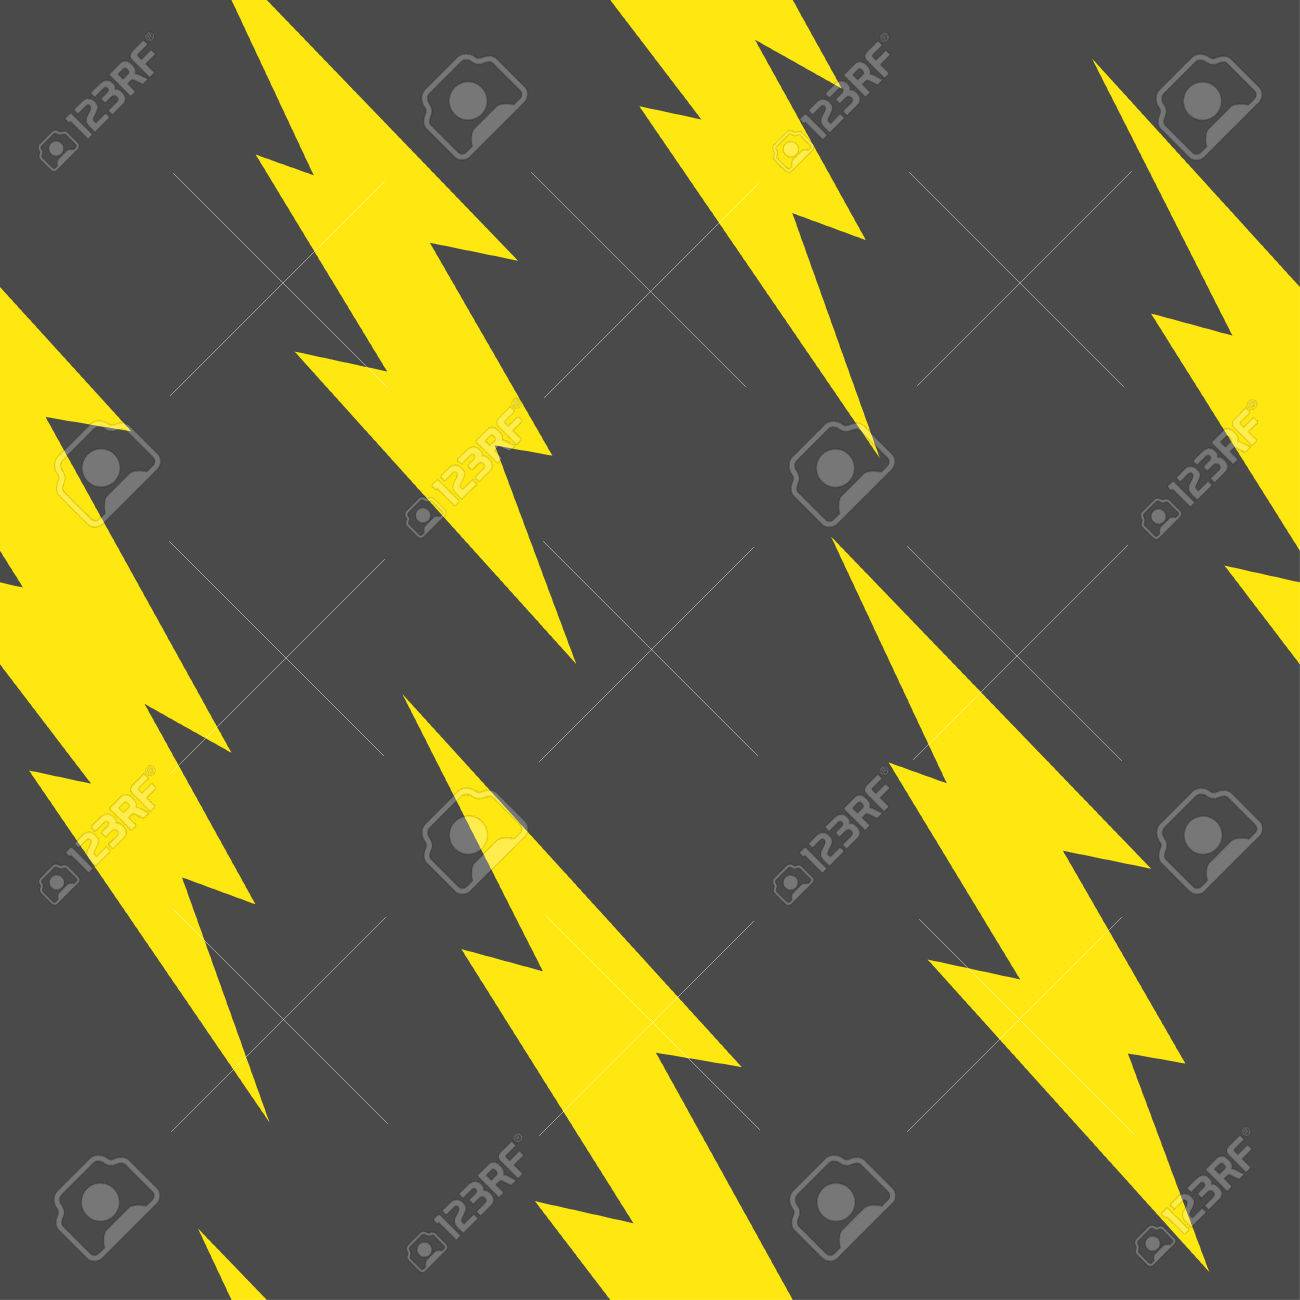 Flash Lightning Bolt Seamless Pattern Stock Vector